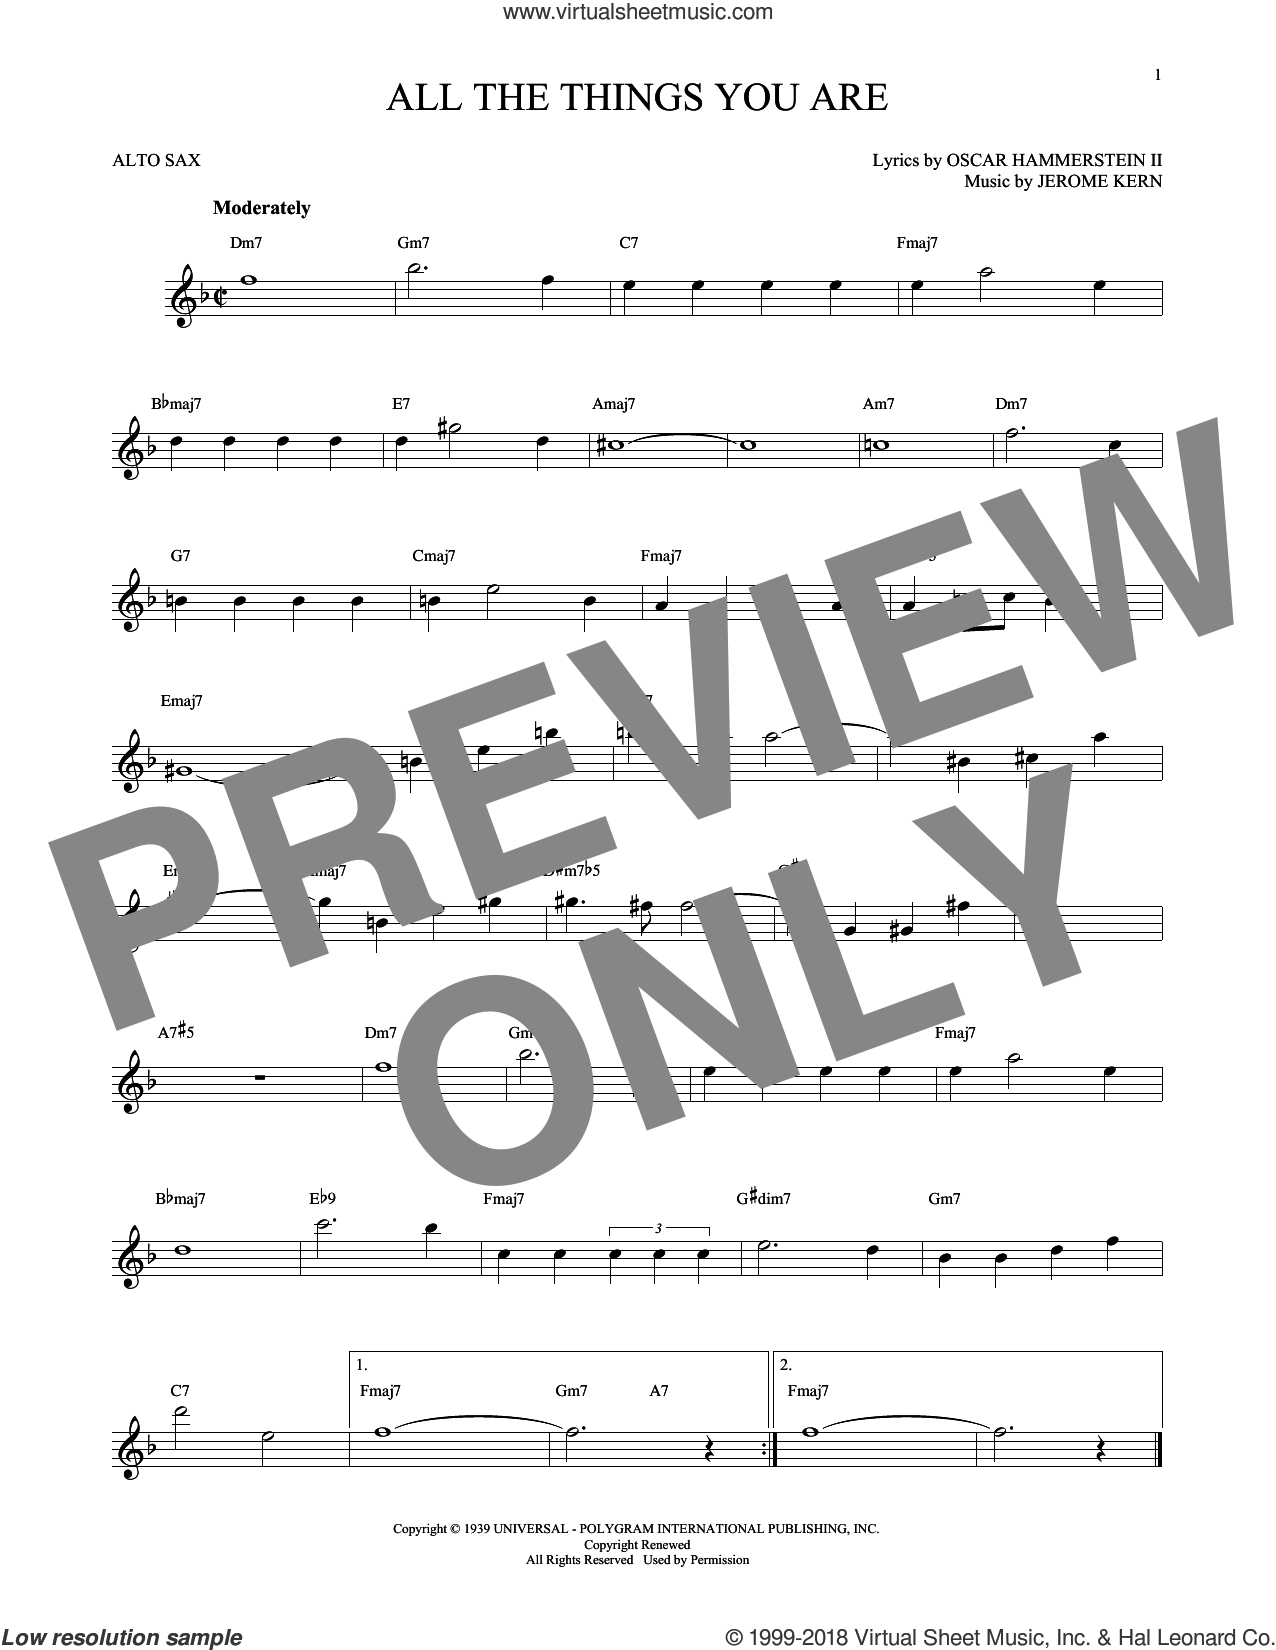 All The Things You Are sheet music for alto saxophone solo by Oscar II Hammerstein, Jack Leonard with Tommy Dorsey Orchestra and Jerome Kern. Score Image Preview.